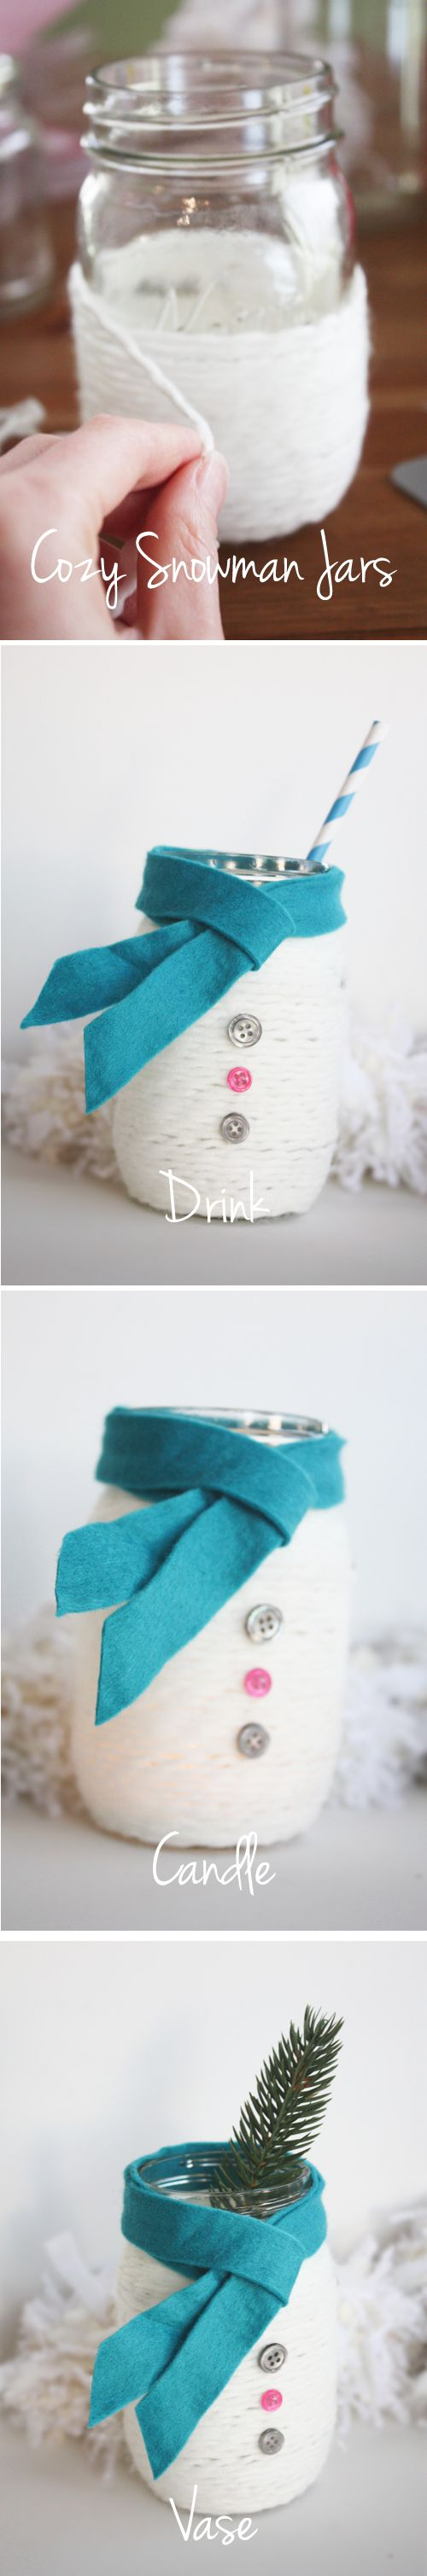 ADORABLE! Cozy Snowman Mason Jars. I bet I can find tons of ways to use these...